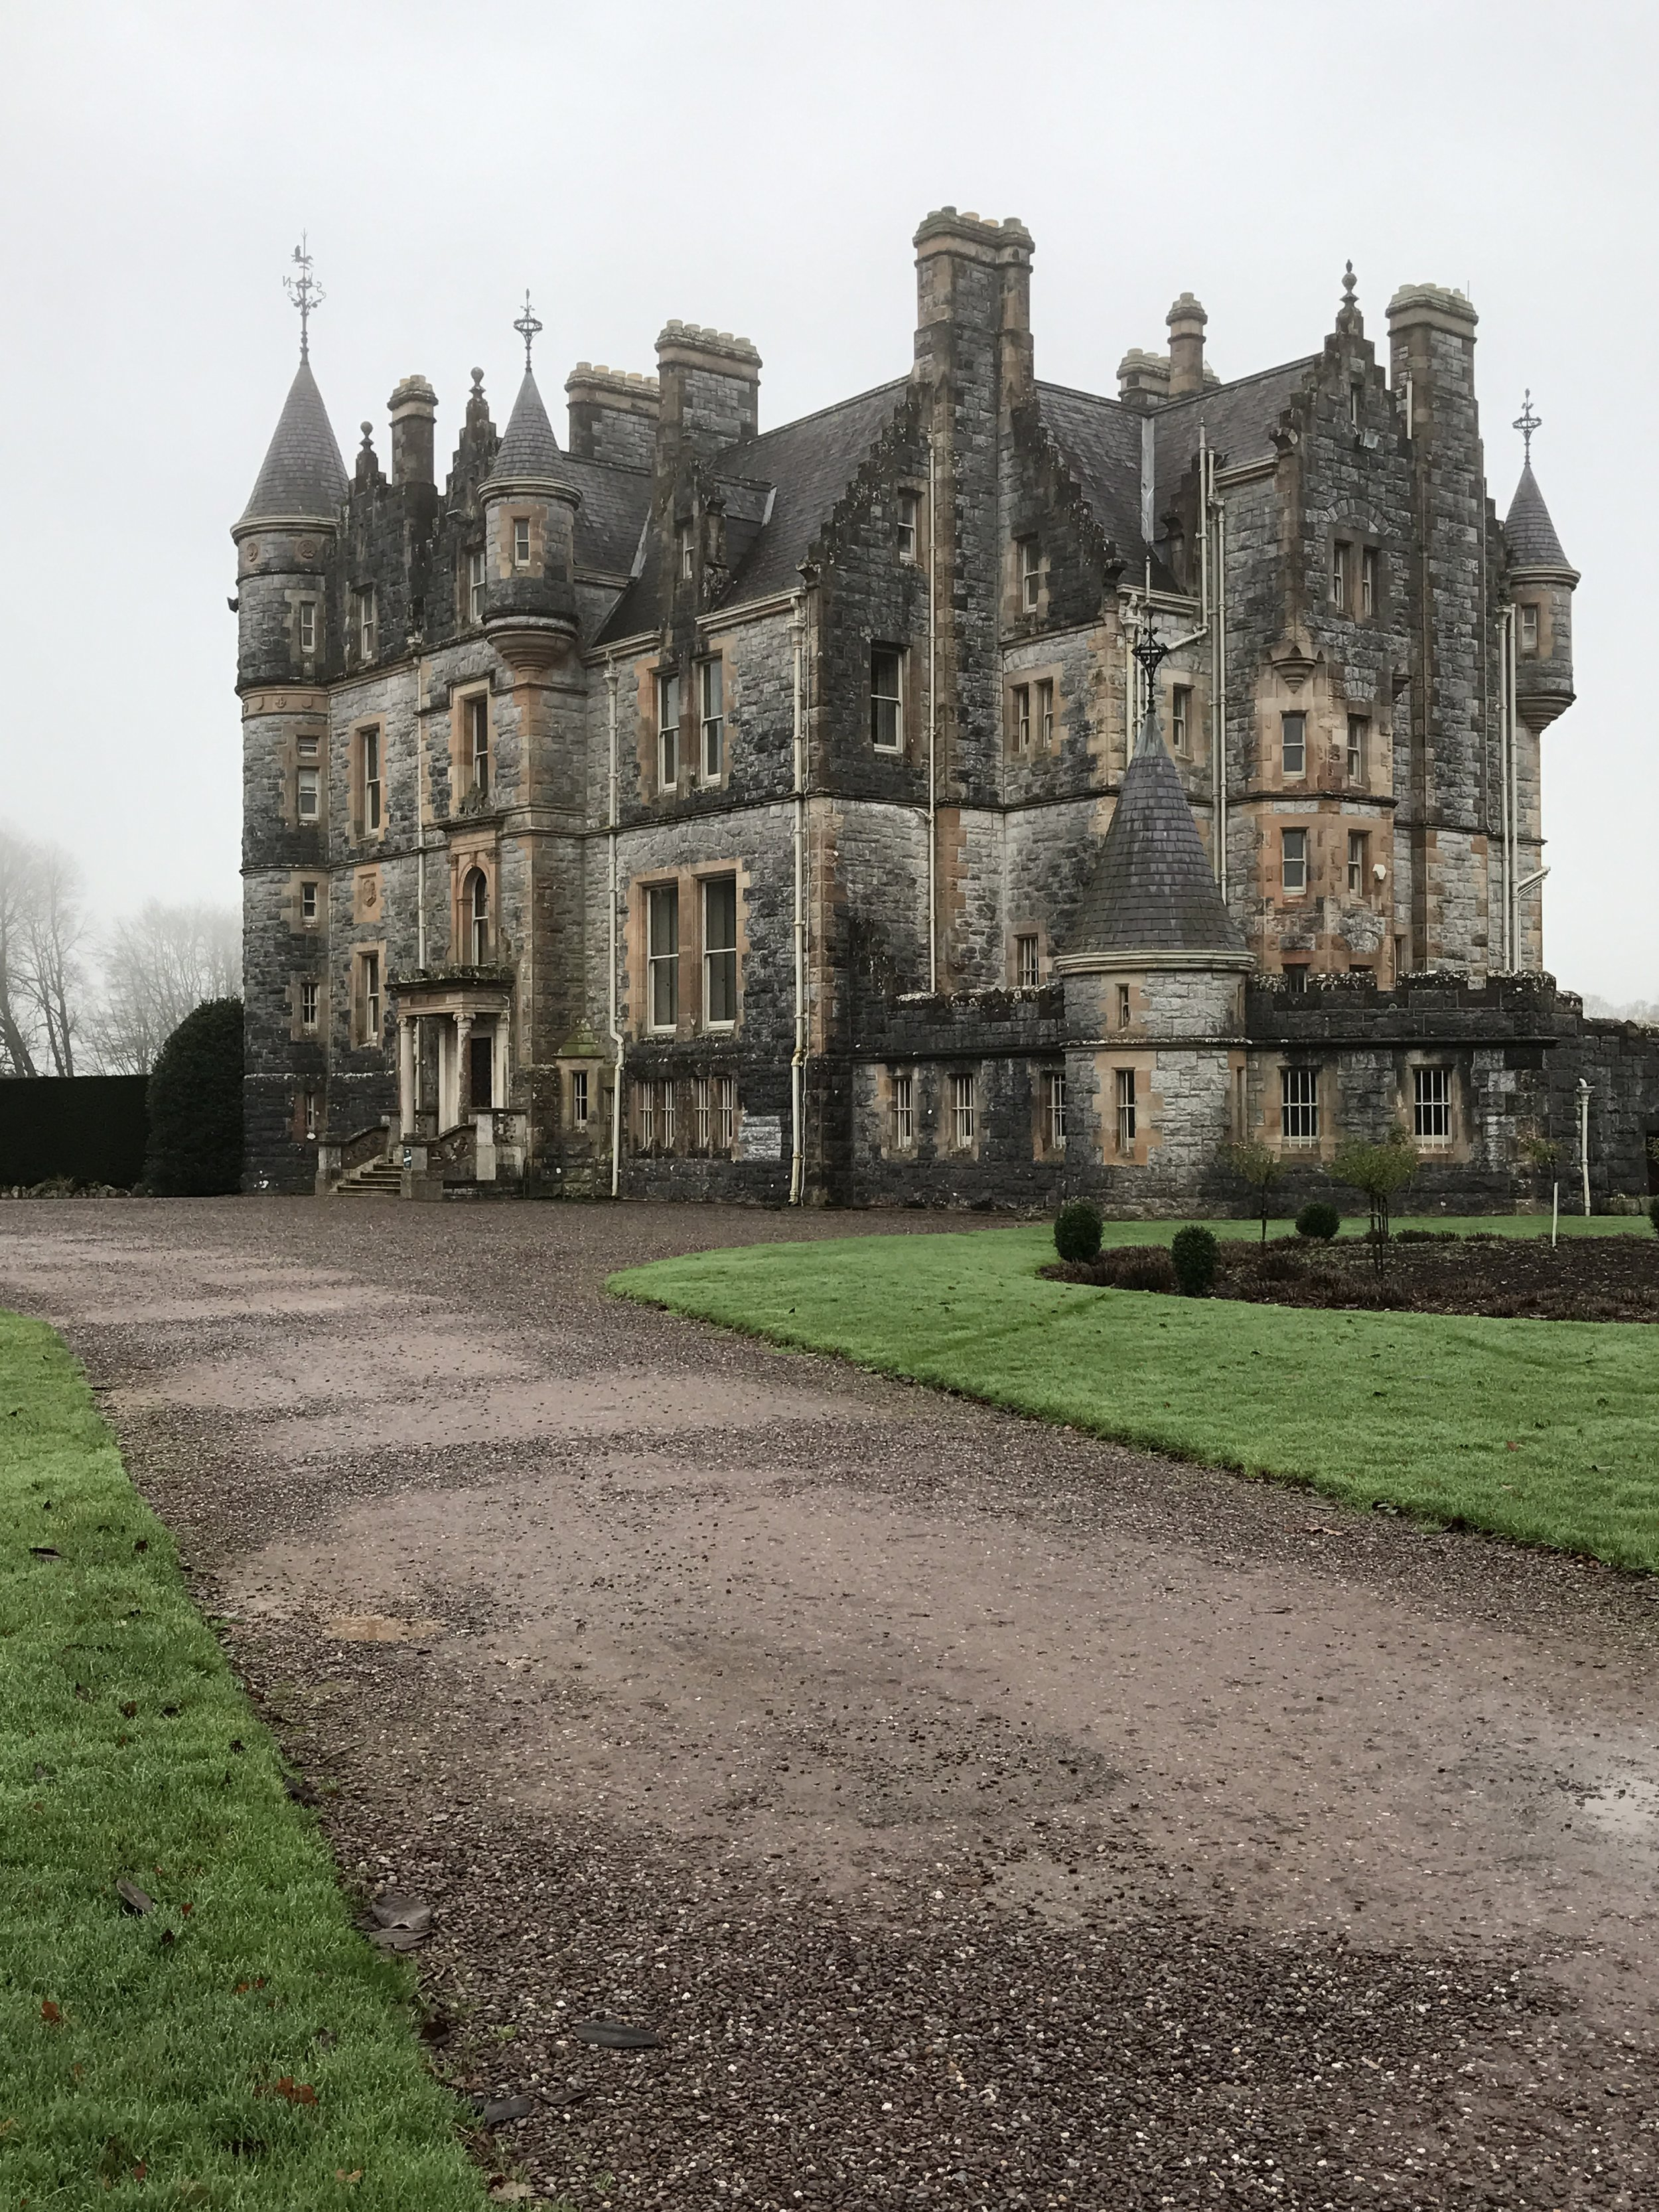 Other than the Castle and Stone, the Blarney grounds also feature a manor house that was constructed at a much later date.